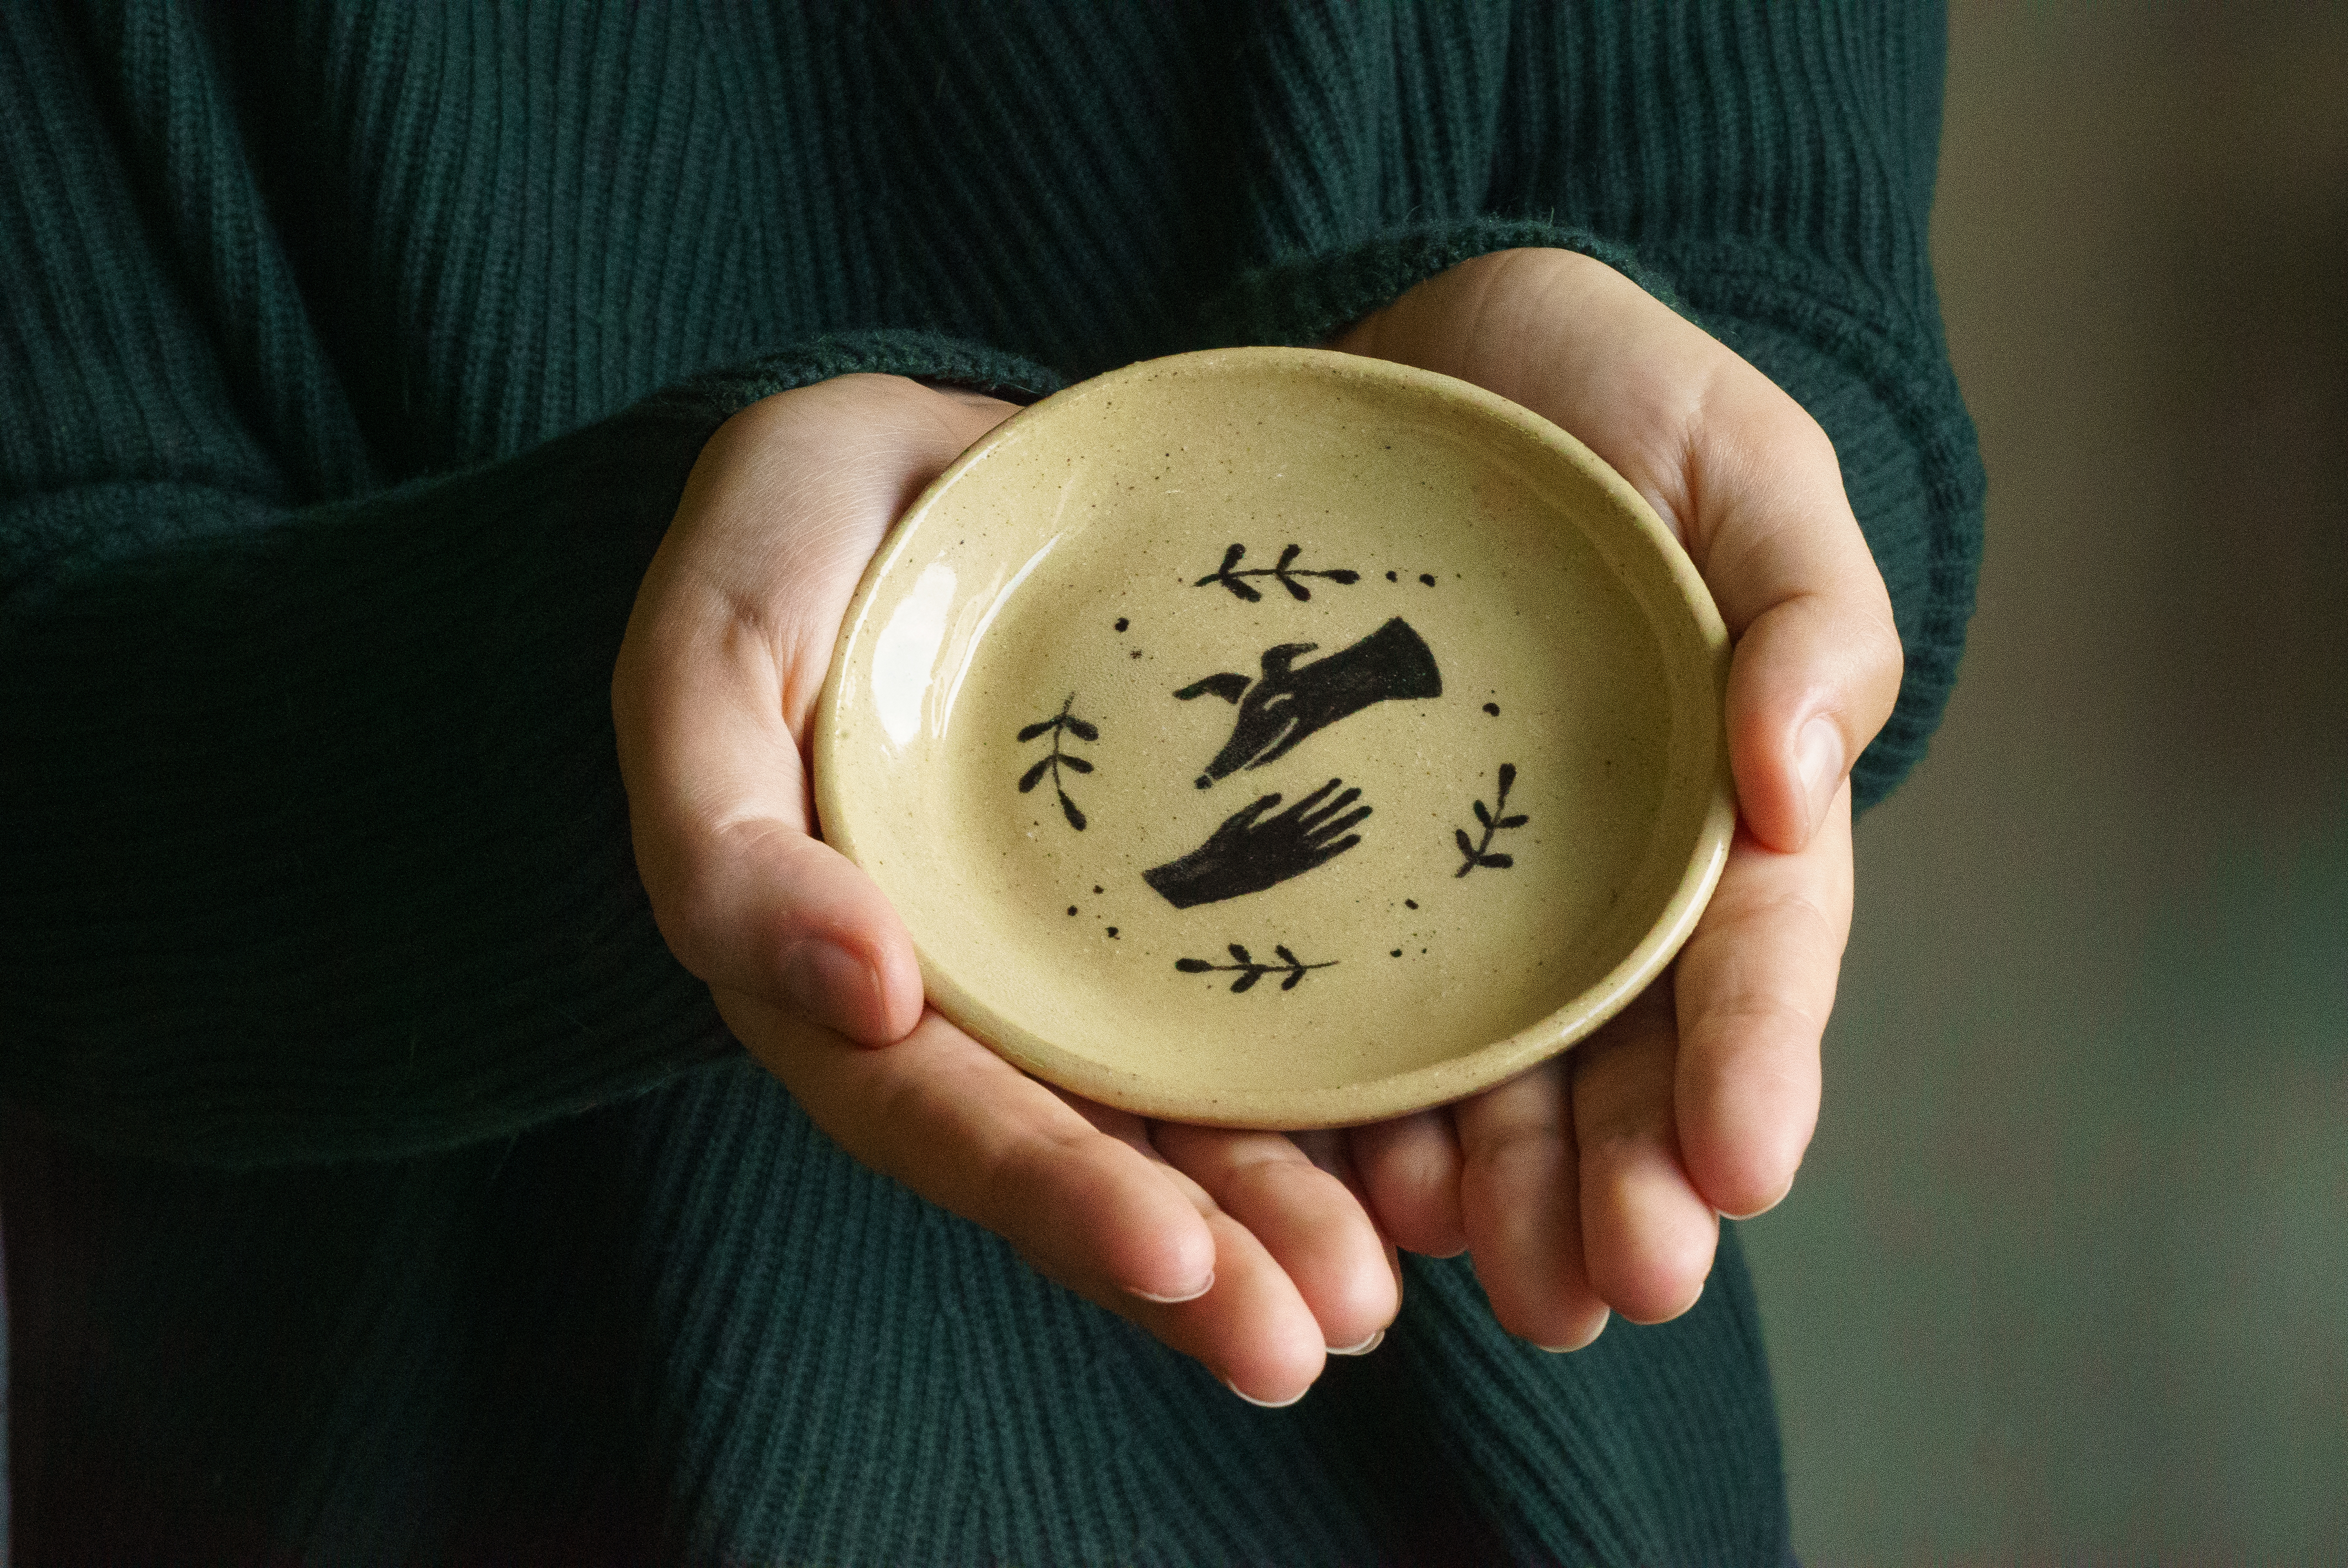 Two hands hold a handmade ceramic dish featuring an illustration of a hand petting a greyhound surrounded by leaves